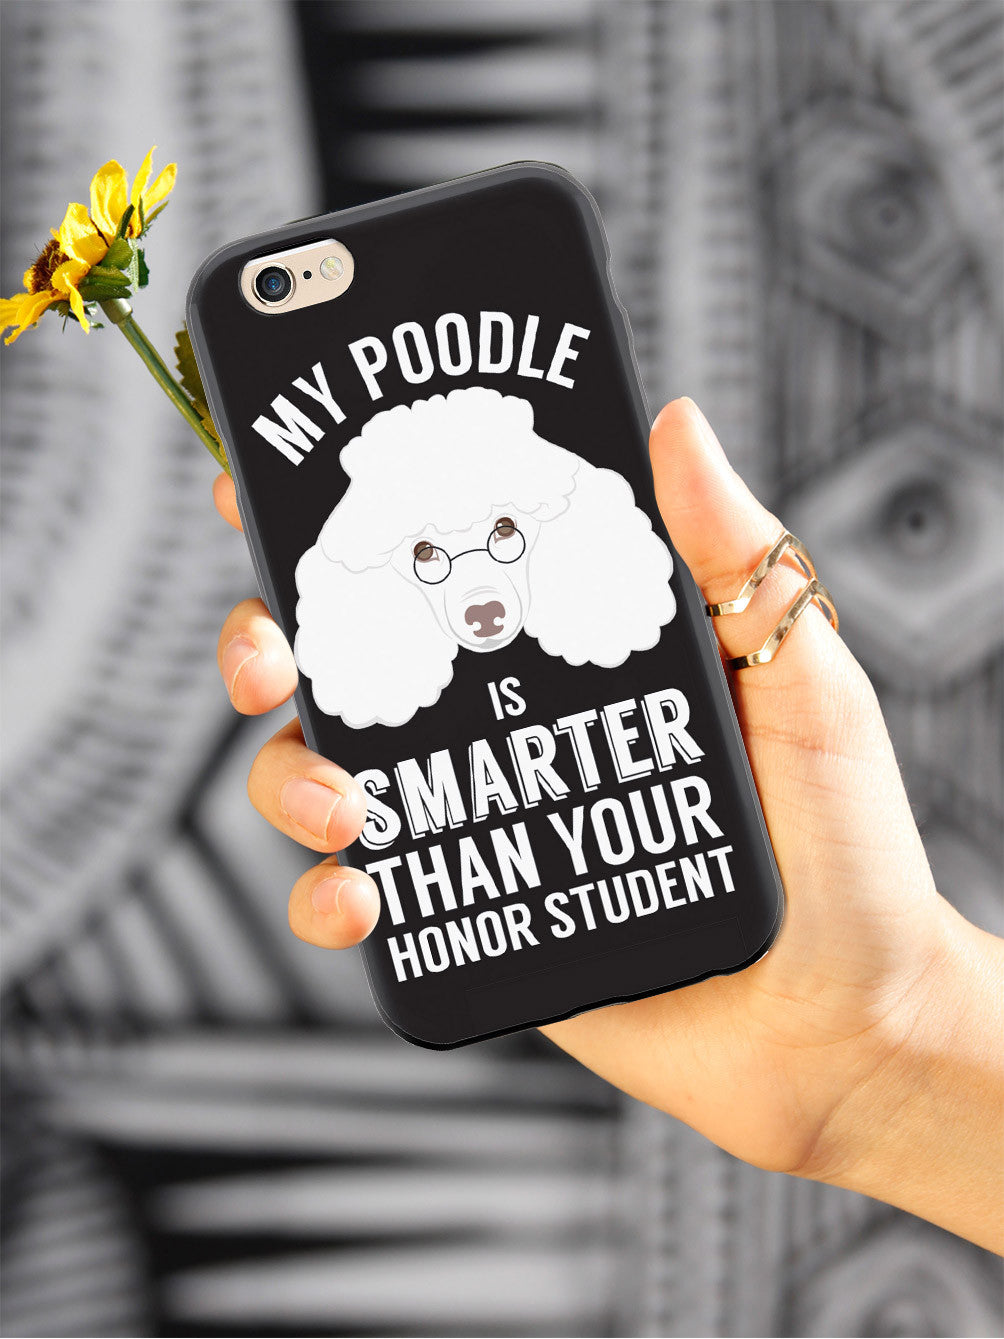 Smarter Than Your Honor Student - Poodle Case